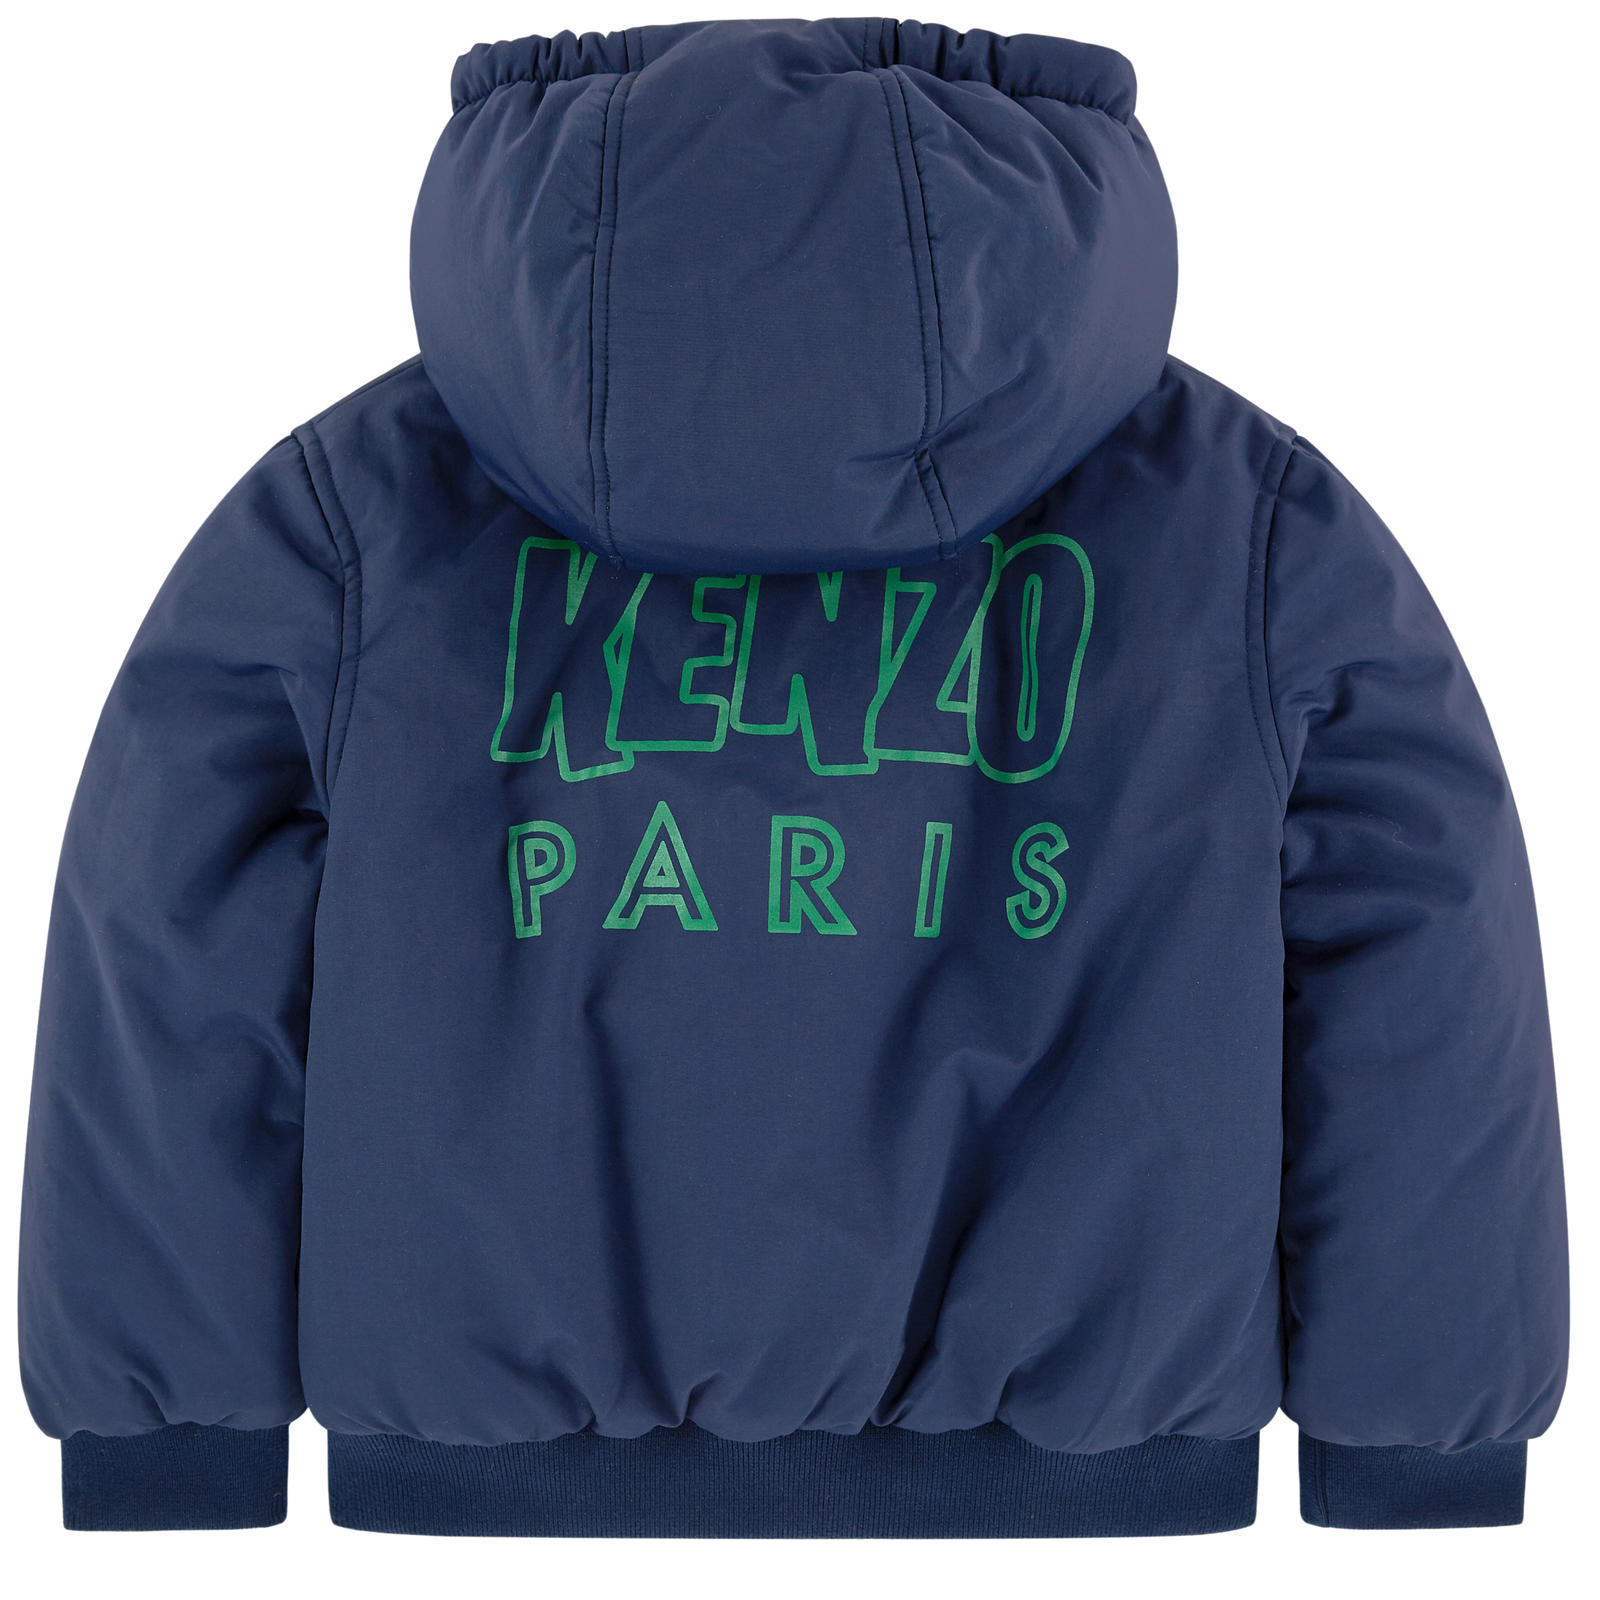 KENZO★2017AW★ロゴ入リバーシブルブルゾン★3~6Y